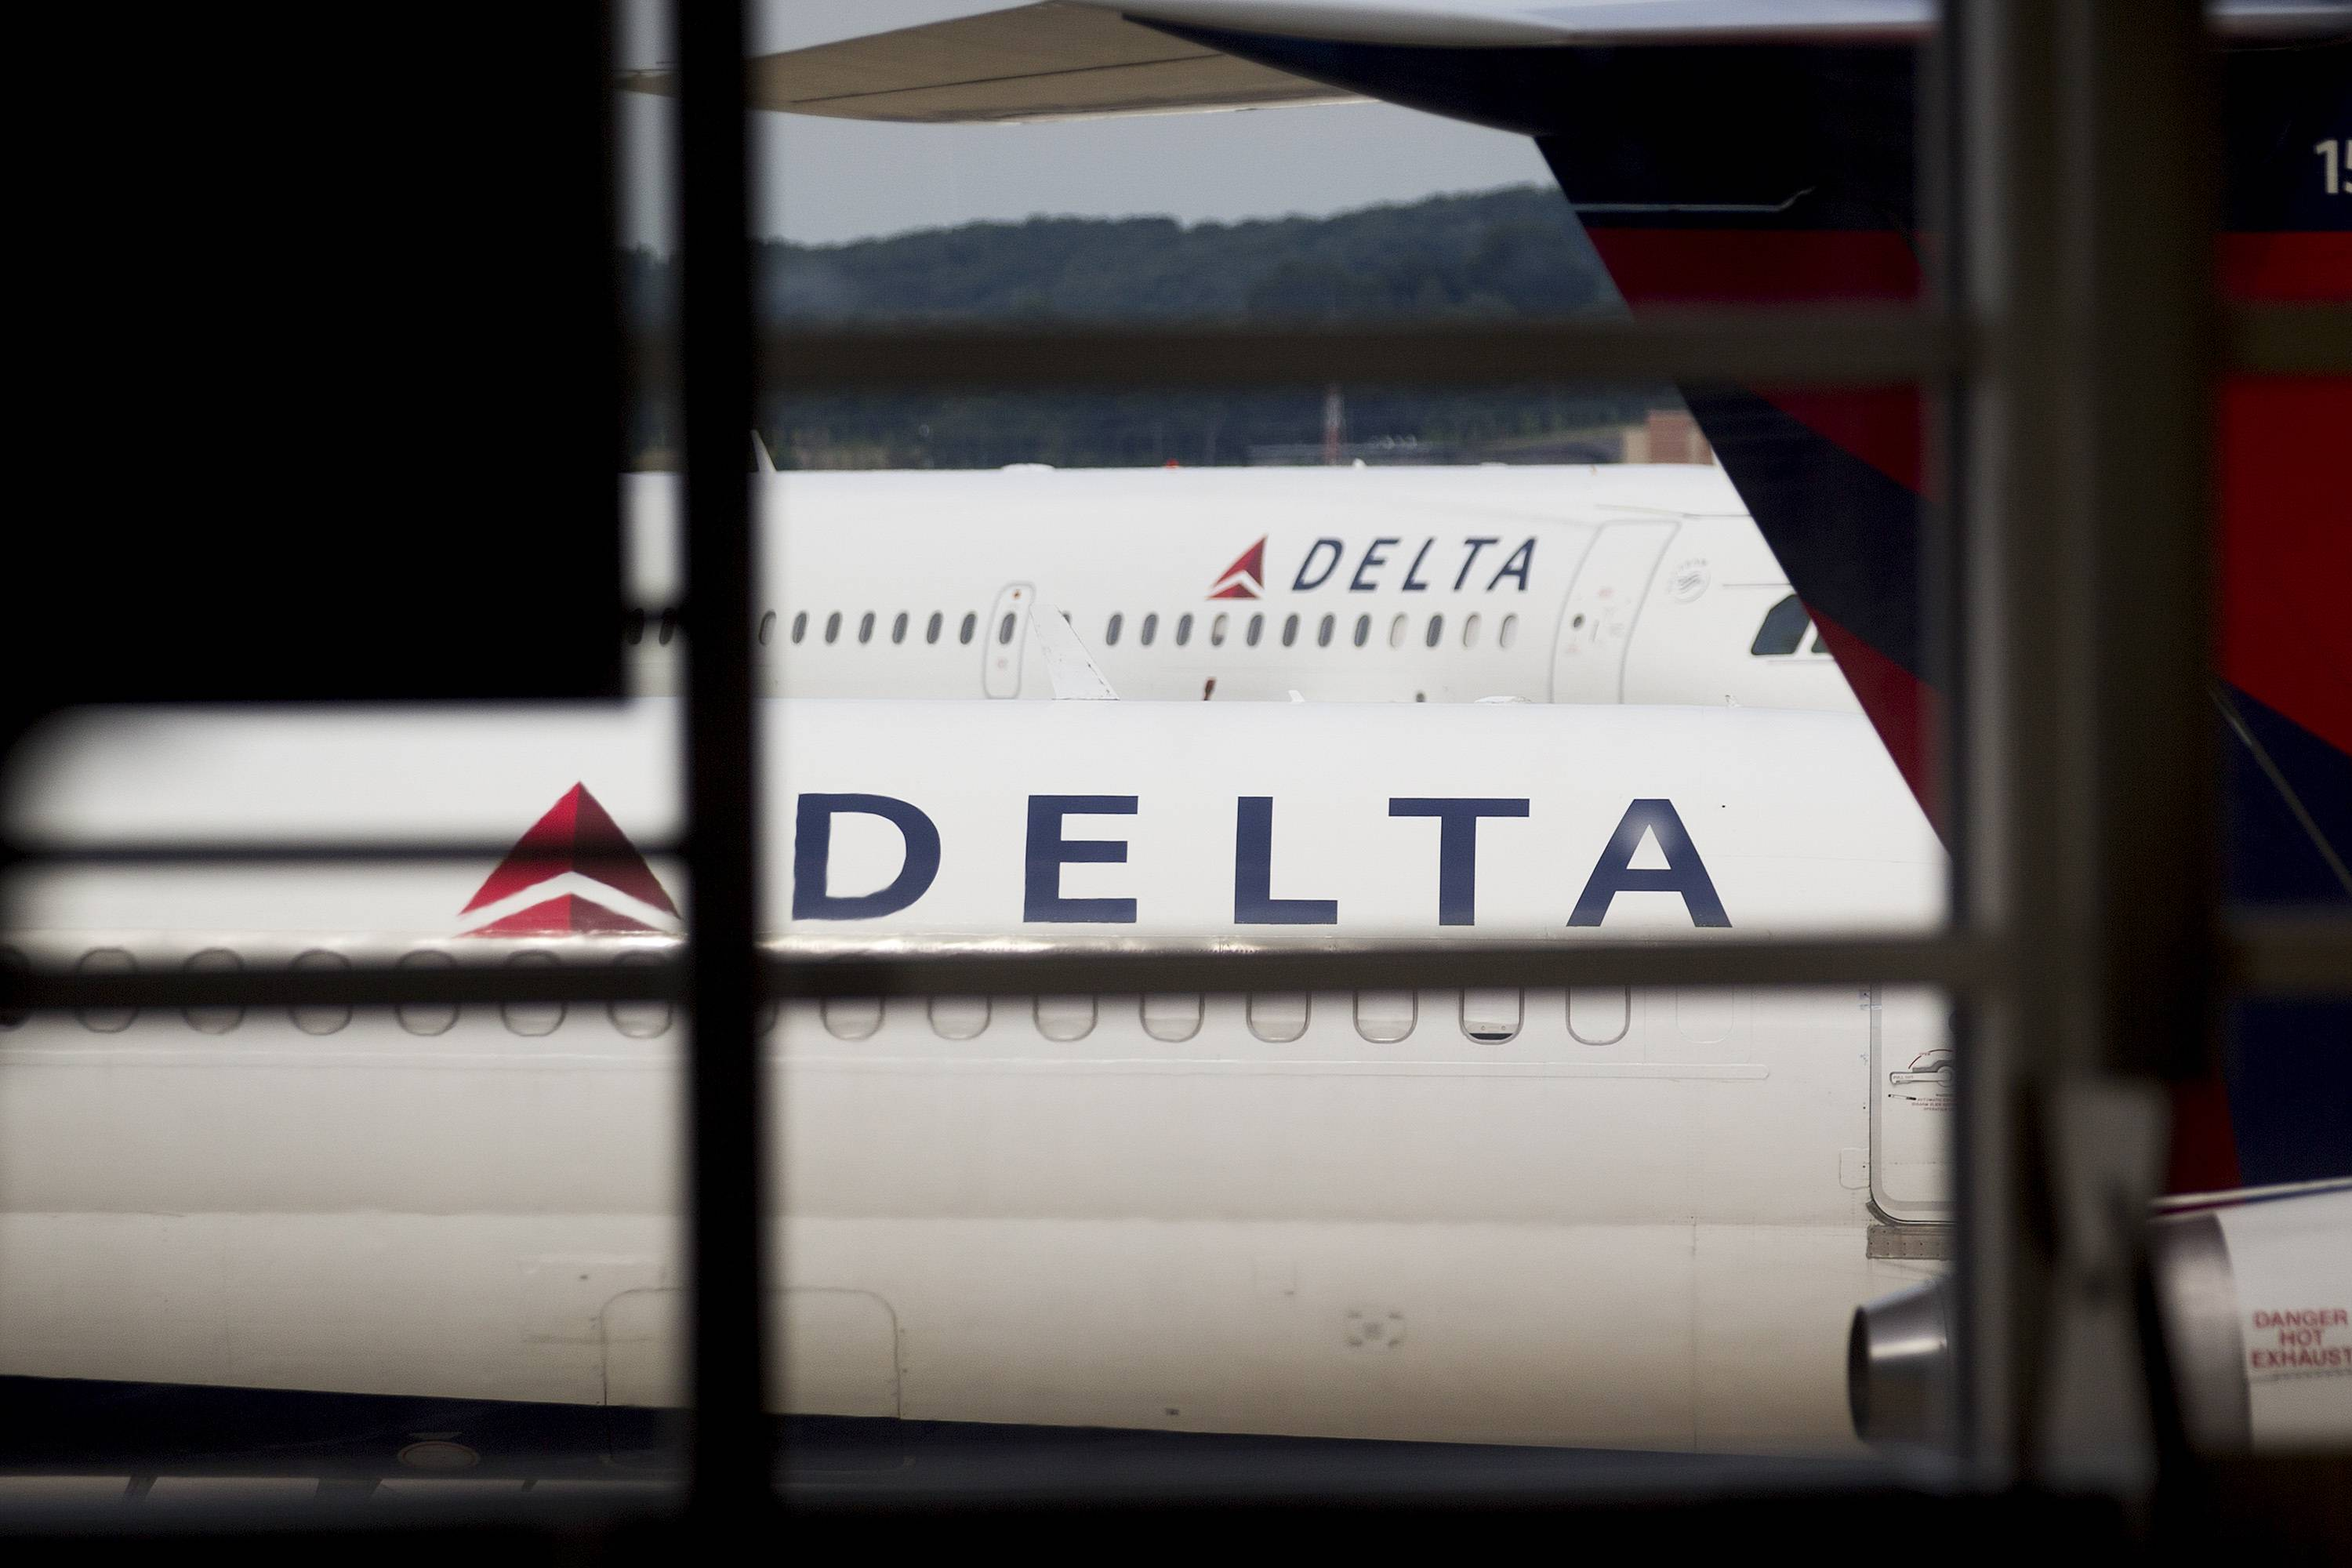 Delta Air Lines Inc. posted second- quarter profit that beat analysts' estimates as the U.S. carrier benefited from strong domestic demand.